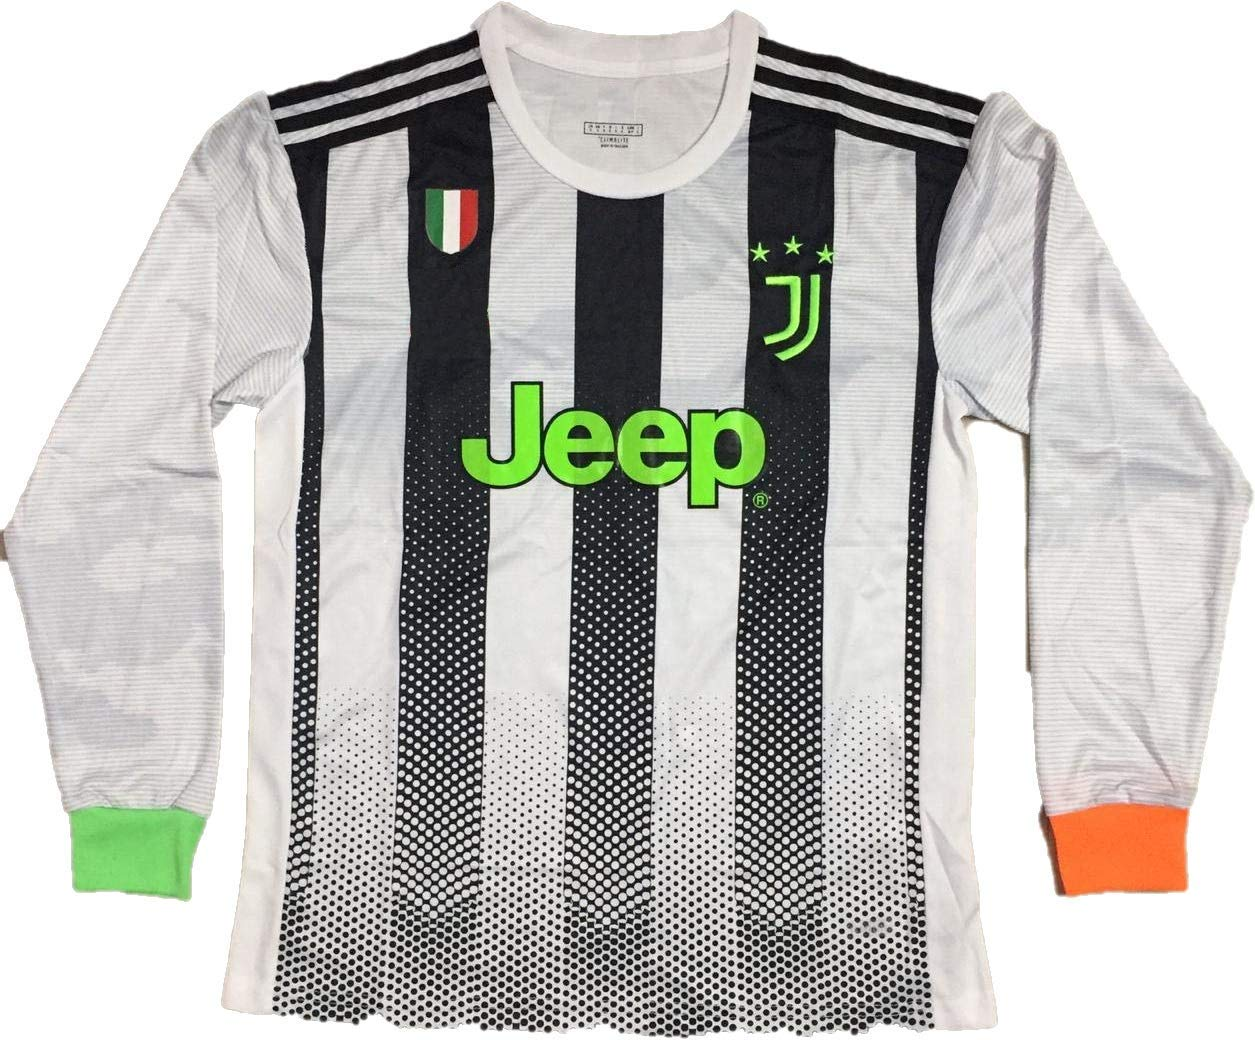 golden fashion juventus palace 19 20 fourth kit full sleeve 2019 20 amazon in sports fitness outdoors golden fashion juventus palace 19 20 fourth kit full sleeve 2019 20